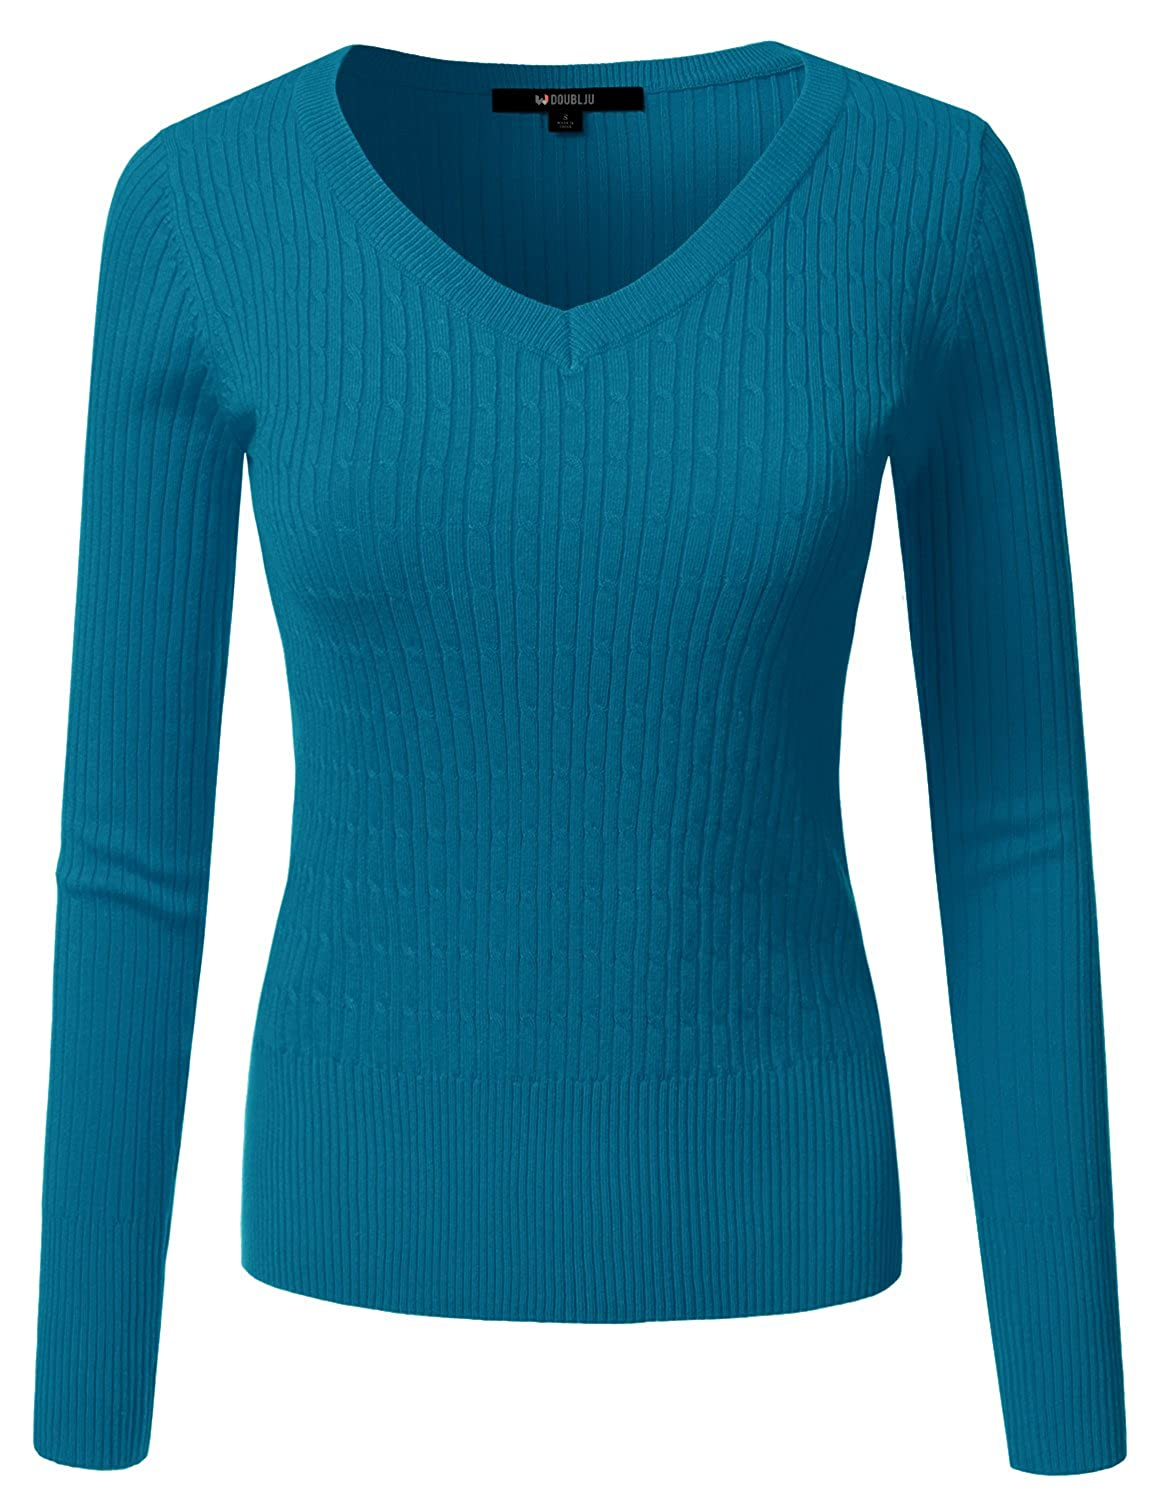 Awoswl0226_teal Doublju Slim Fit Twisted Cable Knit VNeck Sweater For Women